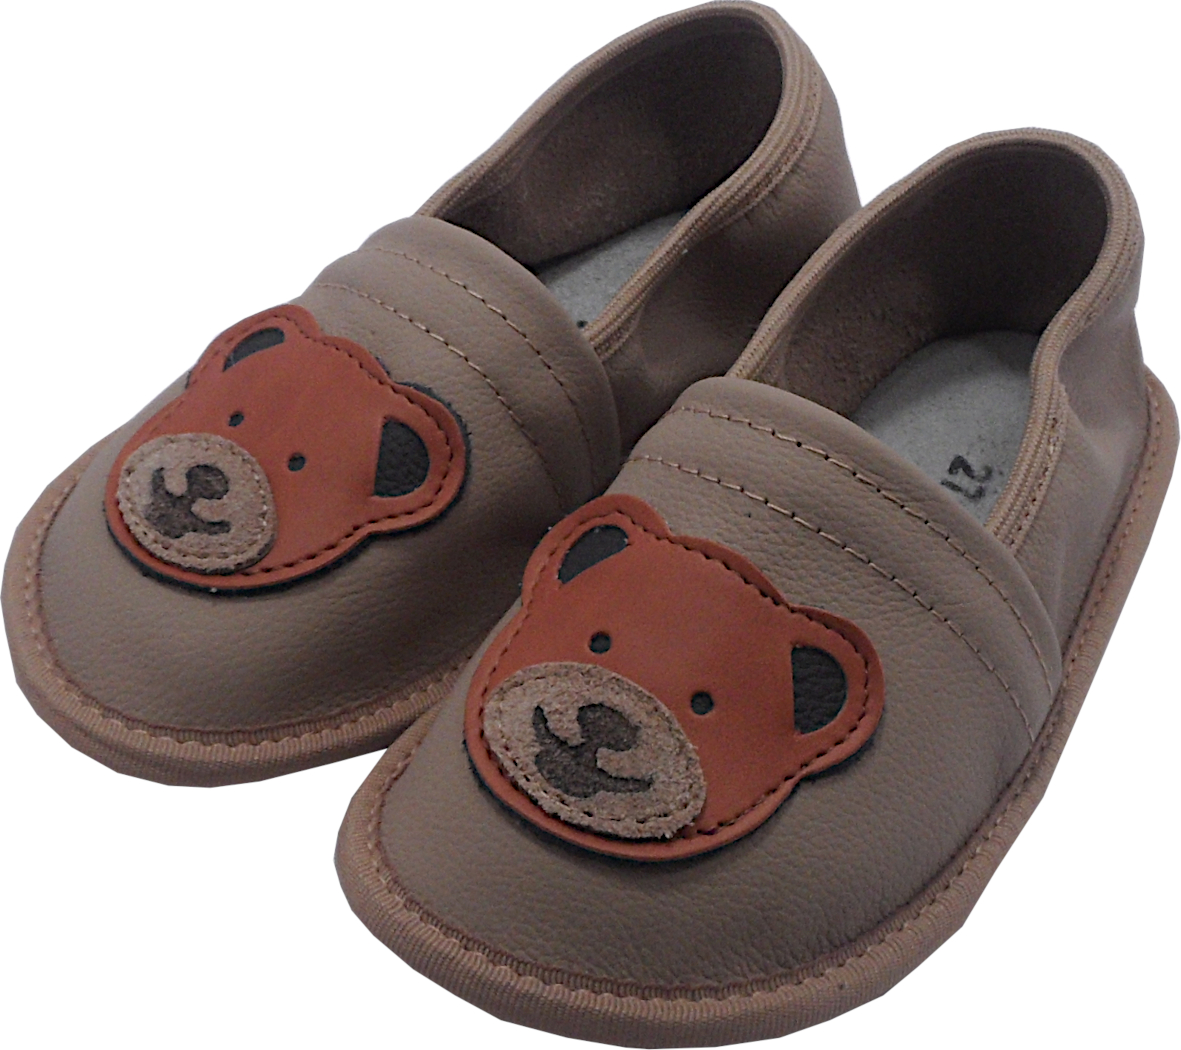 0273 Kids slippers new bear